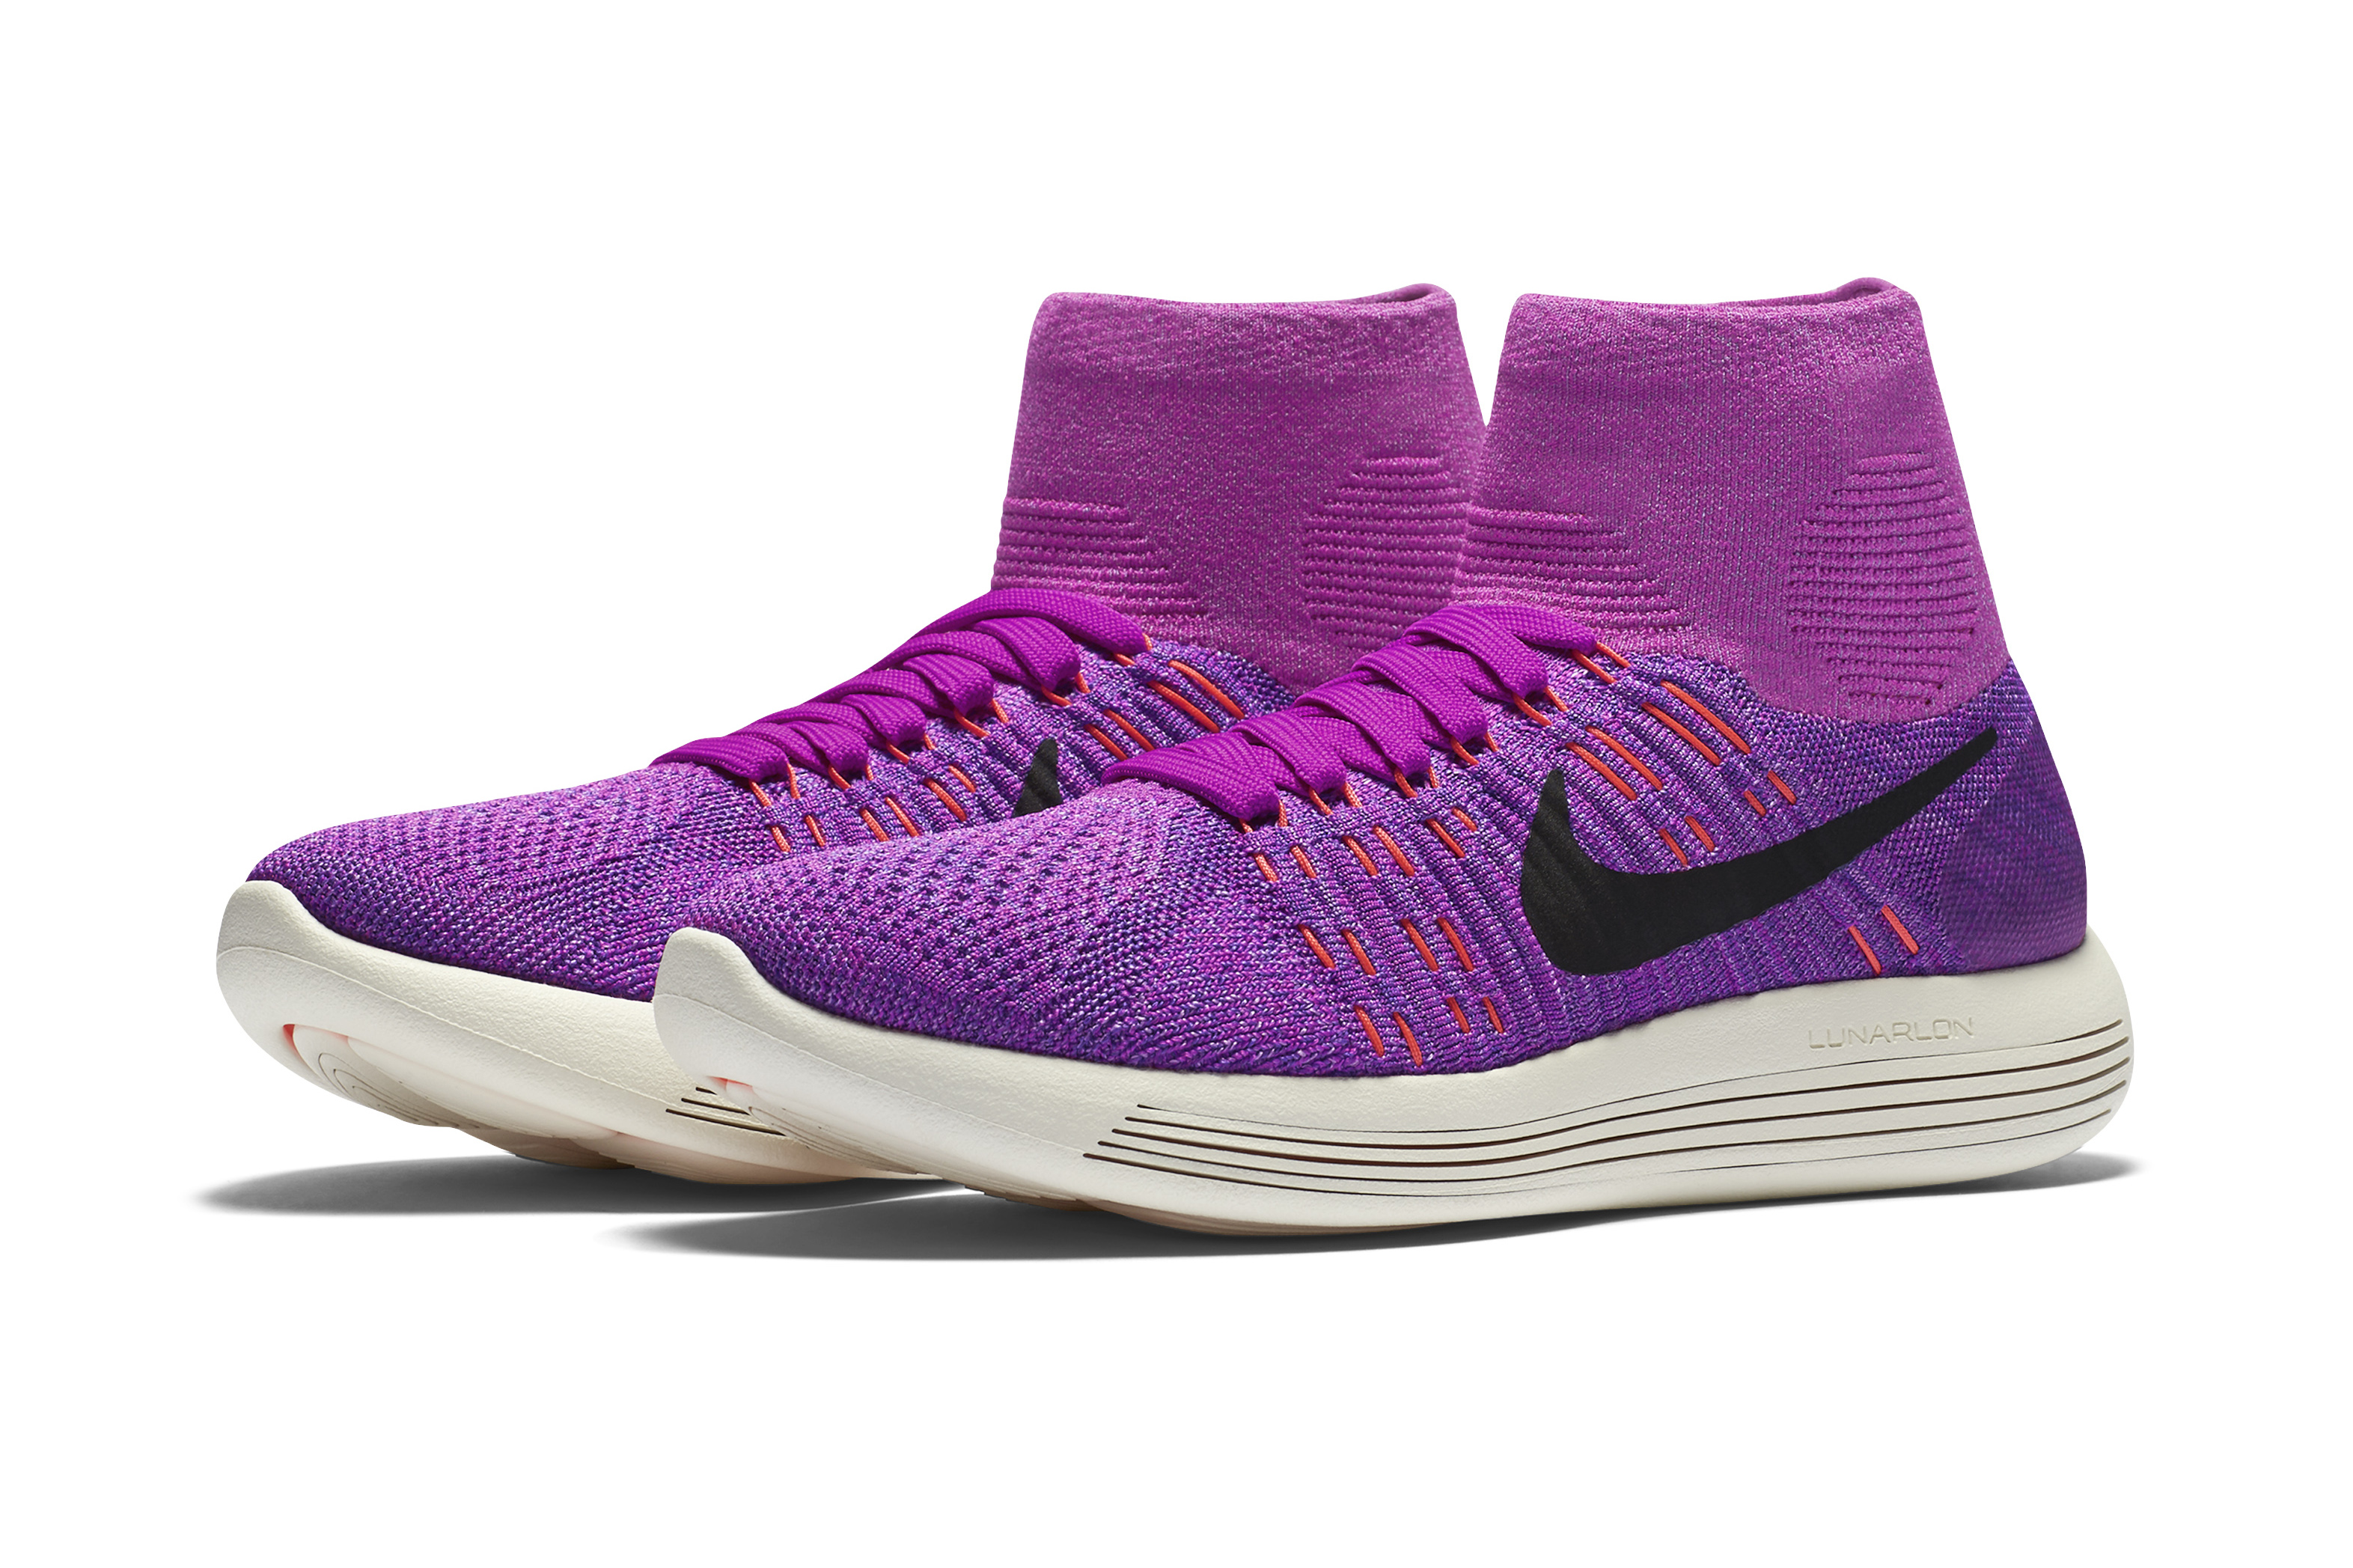 buy popular ab3a6 698d9 ... promo code for nike lunarepic flyknit first impressions 553b7 51bb2